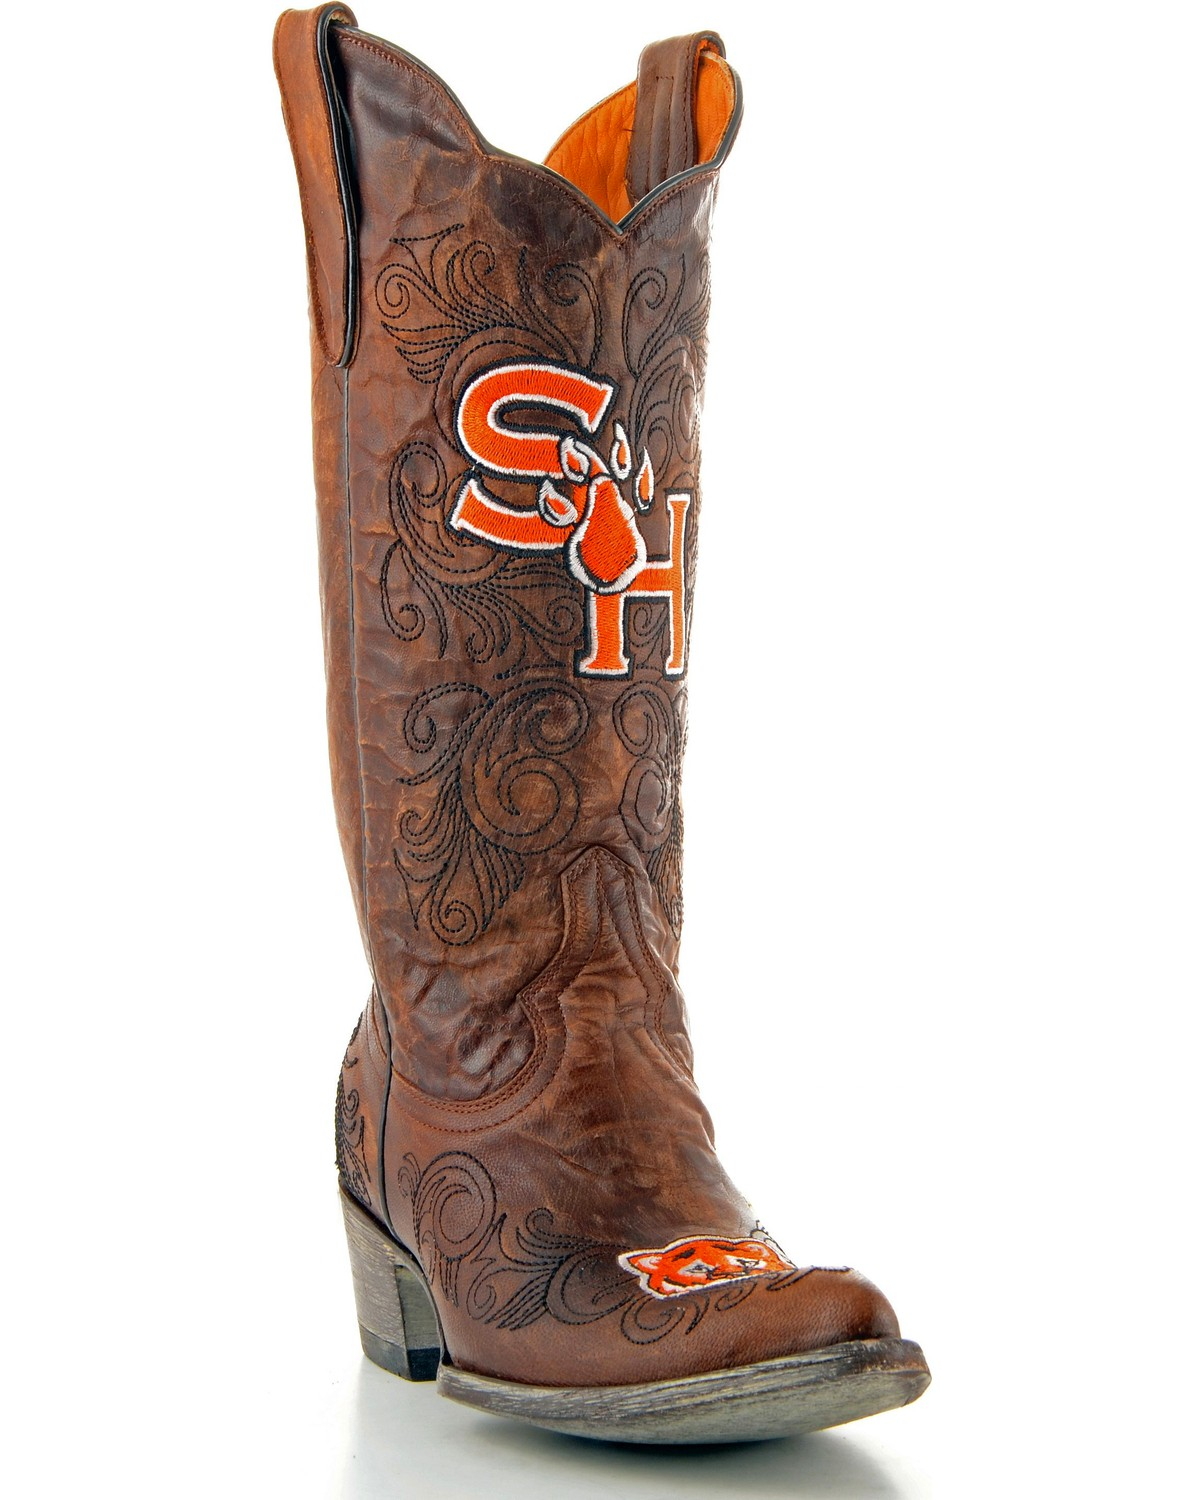 75158dac132665 Gameday Sam Houston State Cowgirl Boots - Pointed Toe